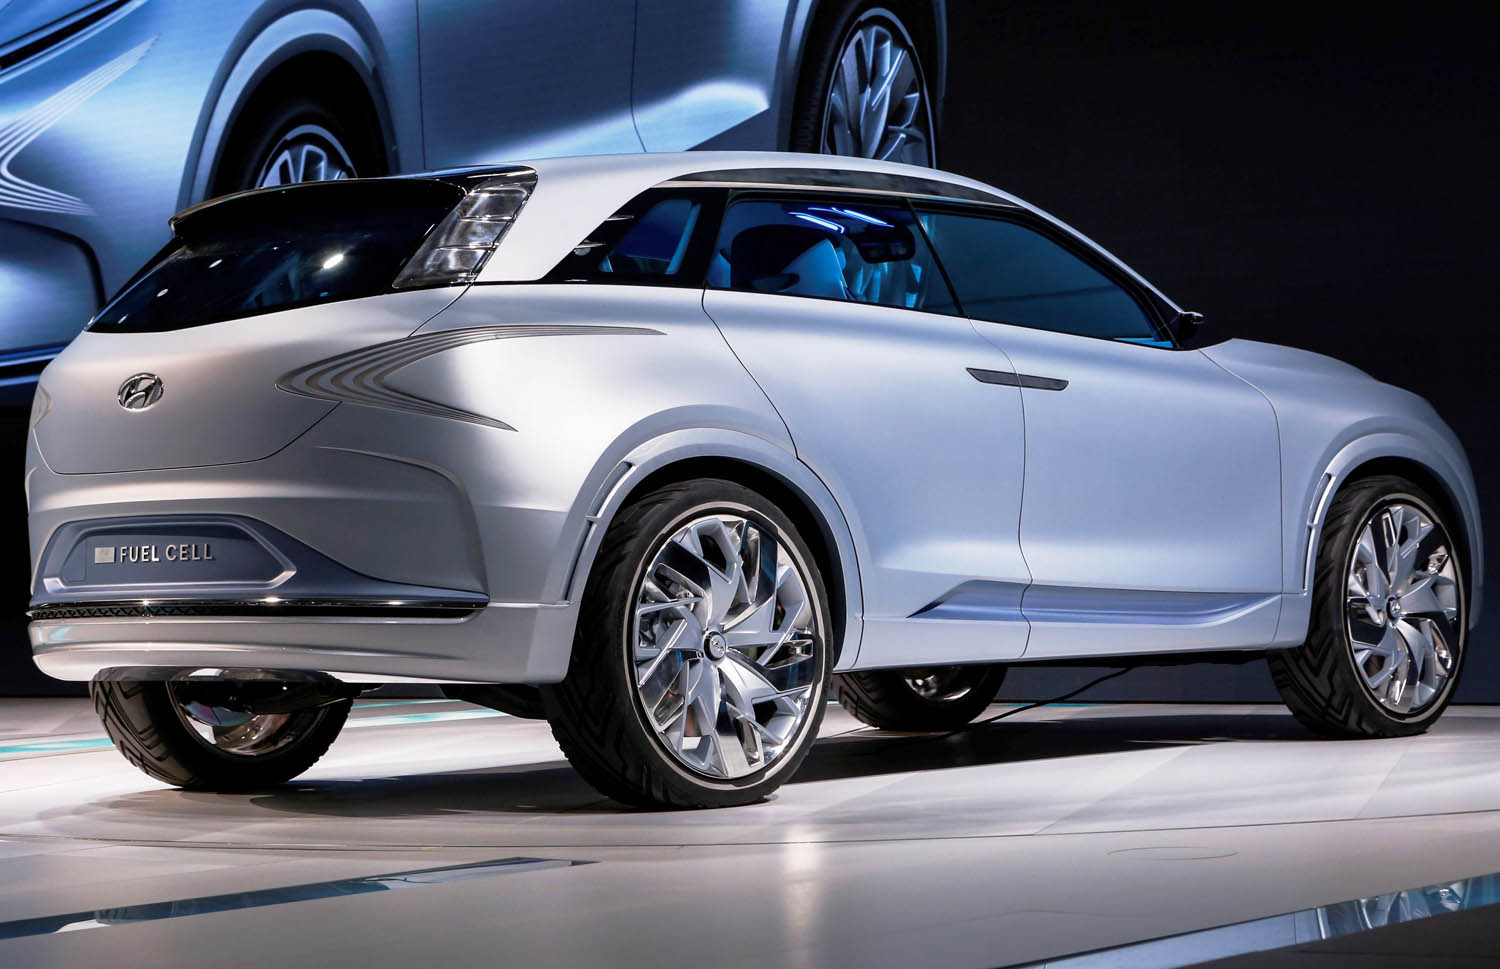 Fuel Cell & Battery Electric Vehicles: The Inevitable Future of Clean Mobility